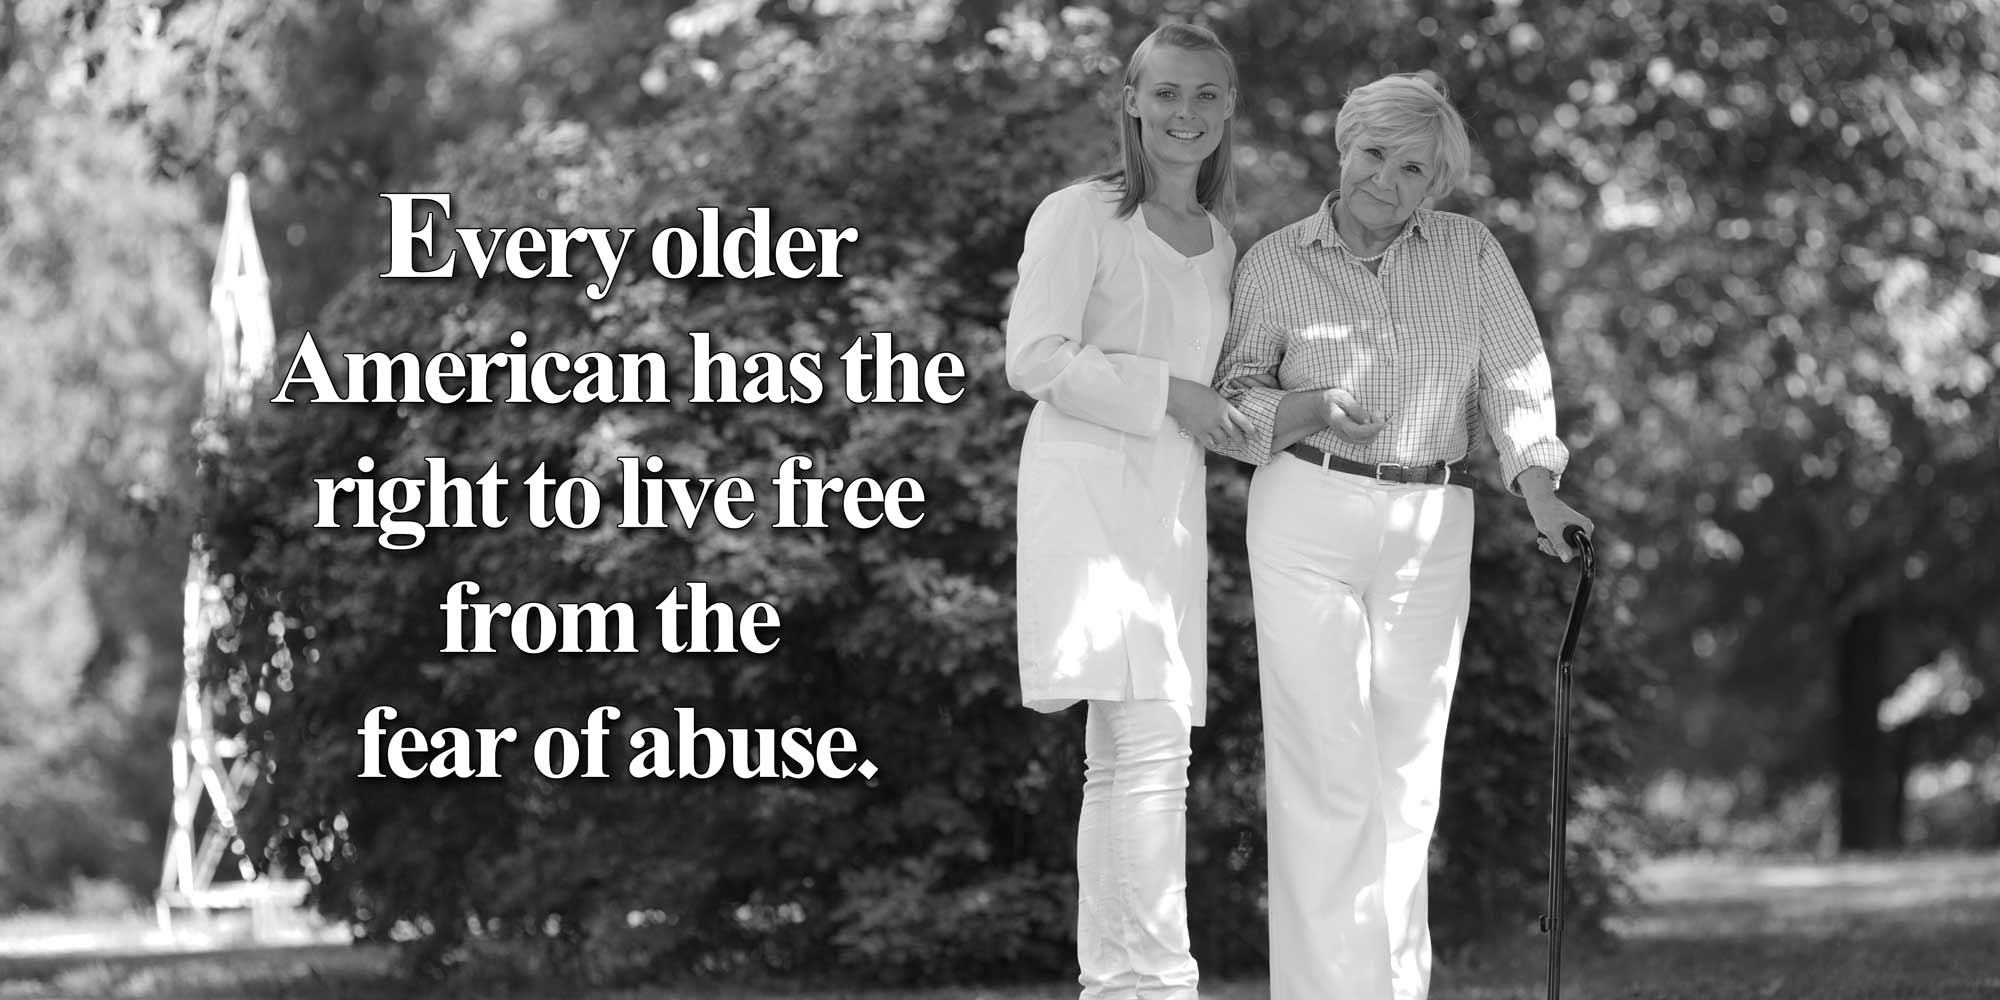 Every older American has the right to live free from the fear of abuse